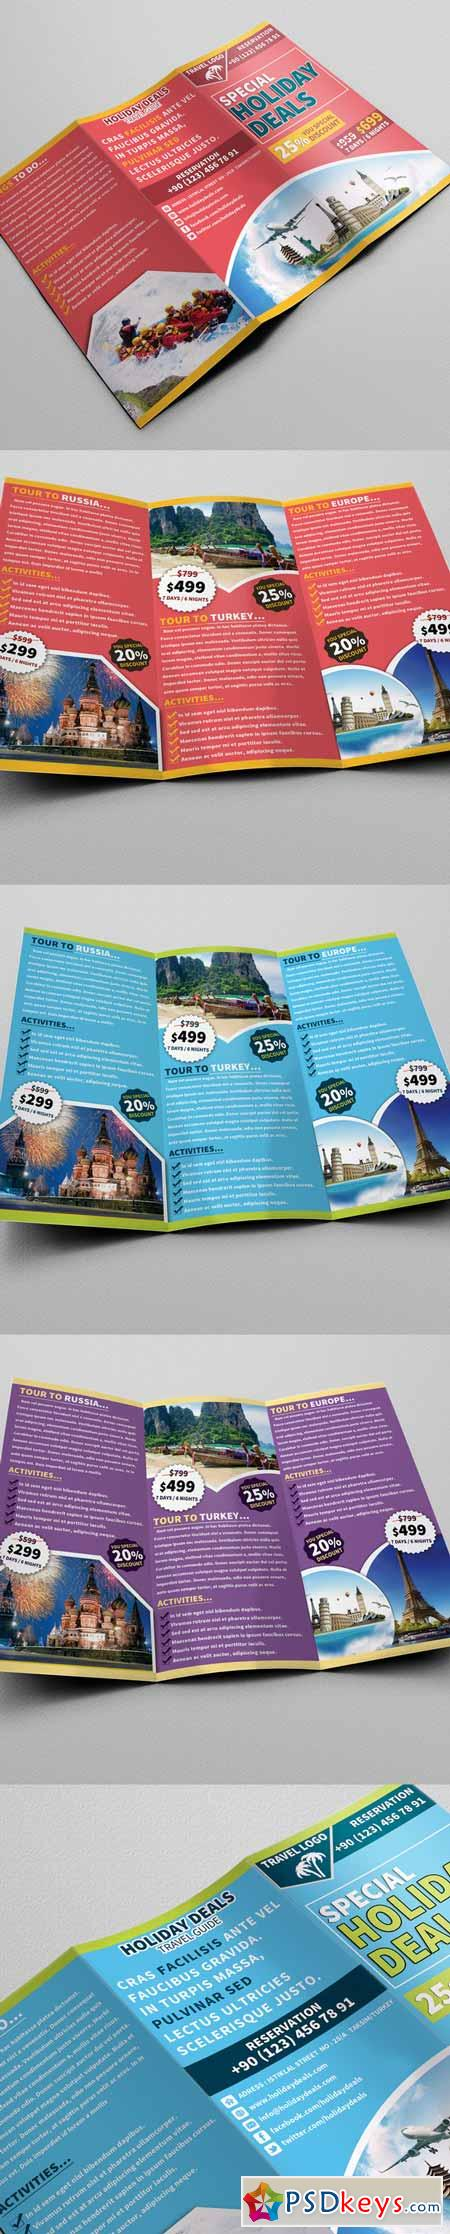 Travel Trifold Brochure 01 177097